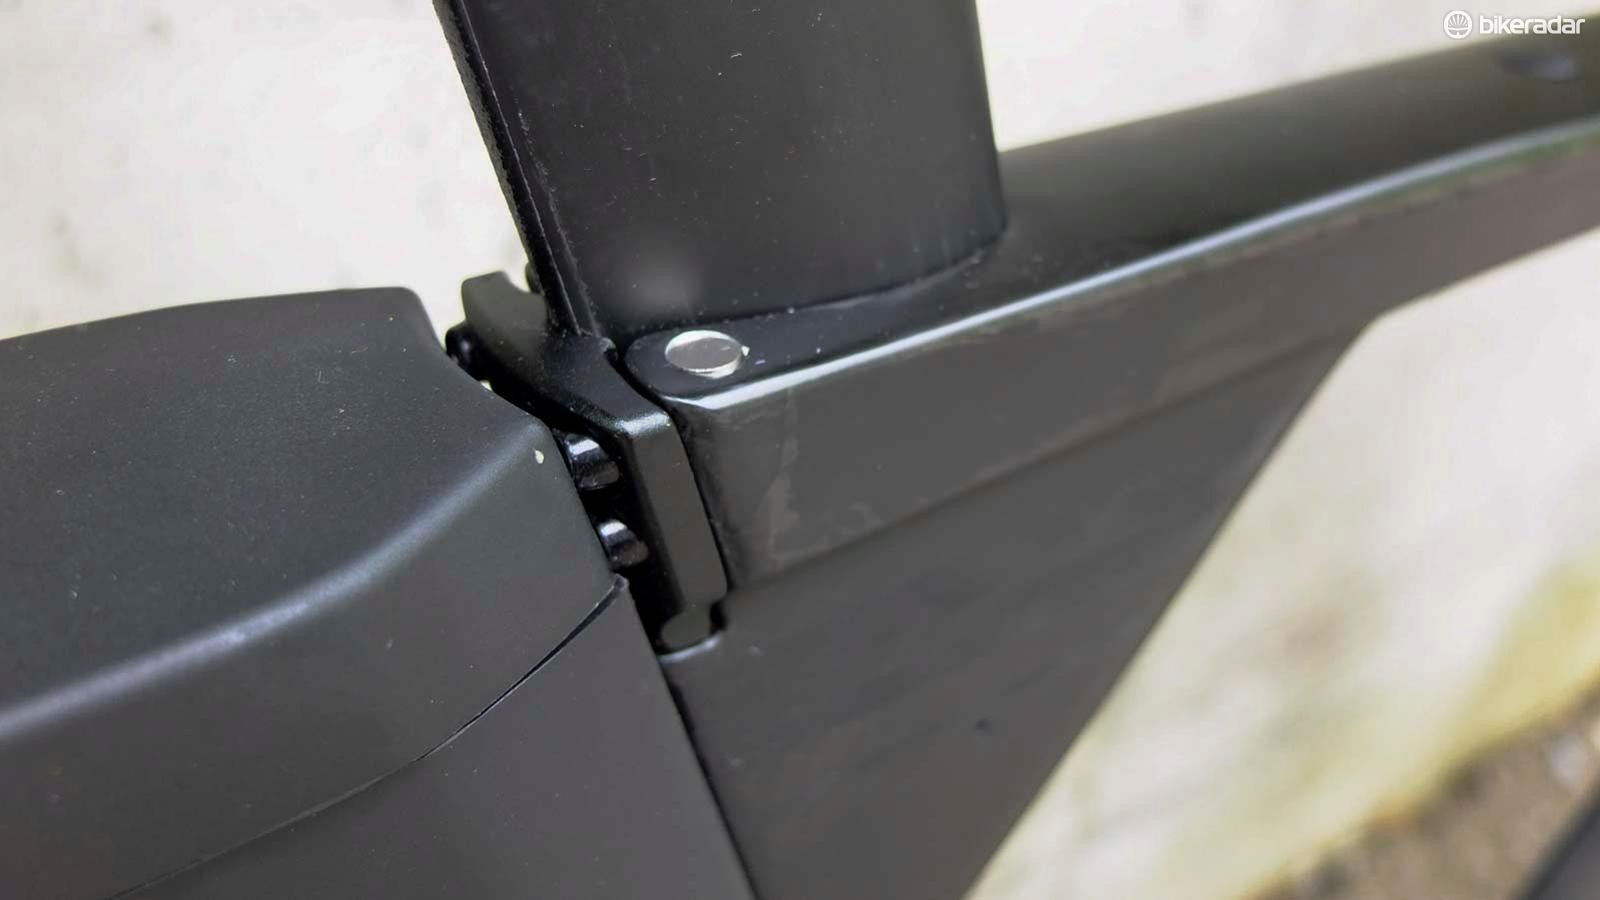 In triathlon configuration, the Timemachine 01 Disc's rear-facing seatpost clamp bolts are tucked between the frame and rear storage box